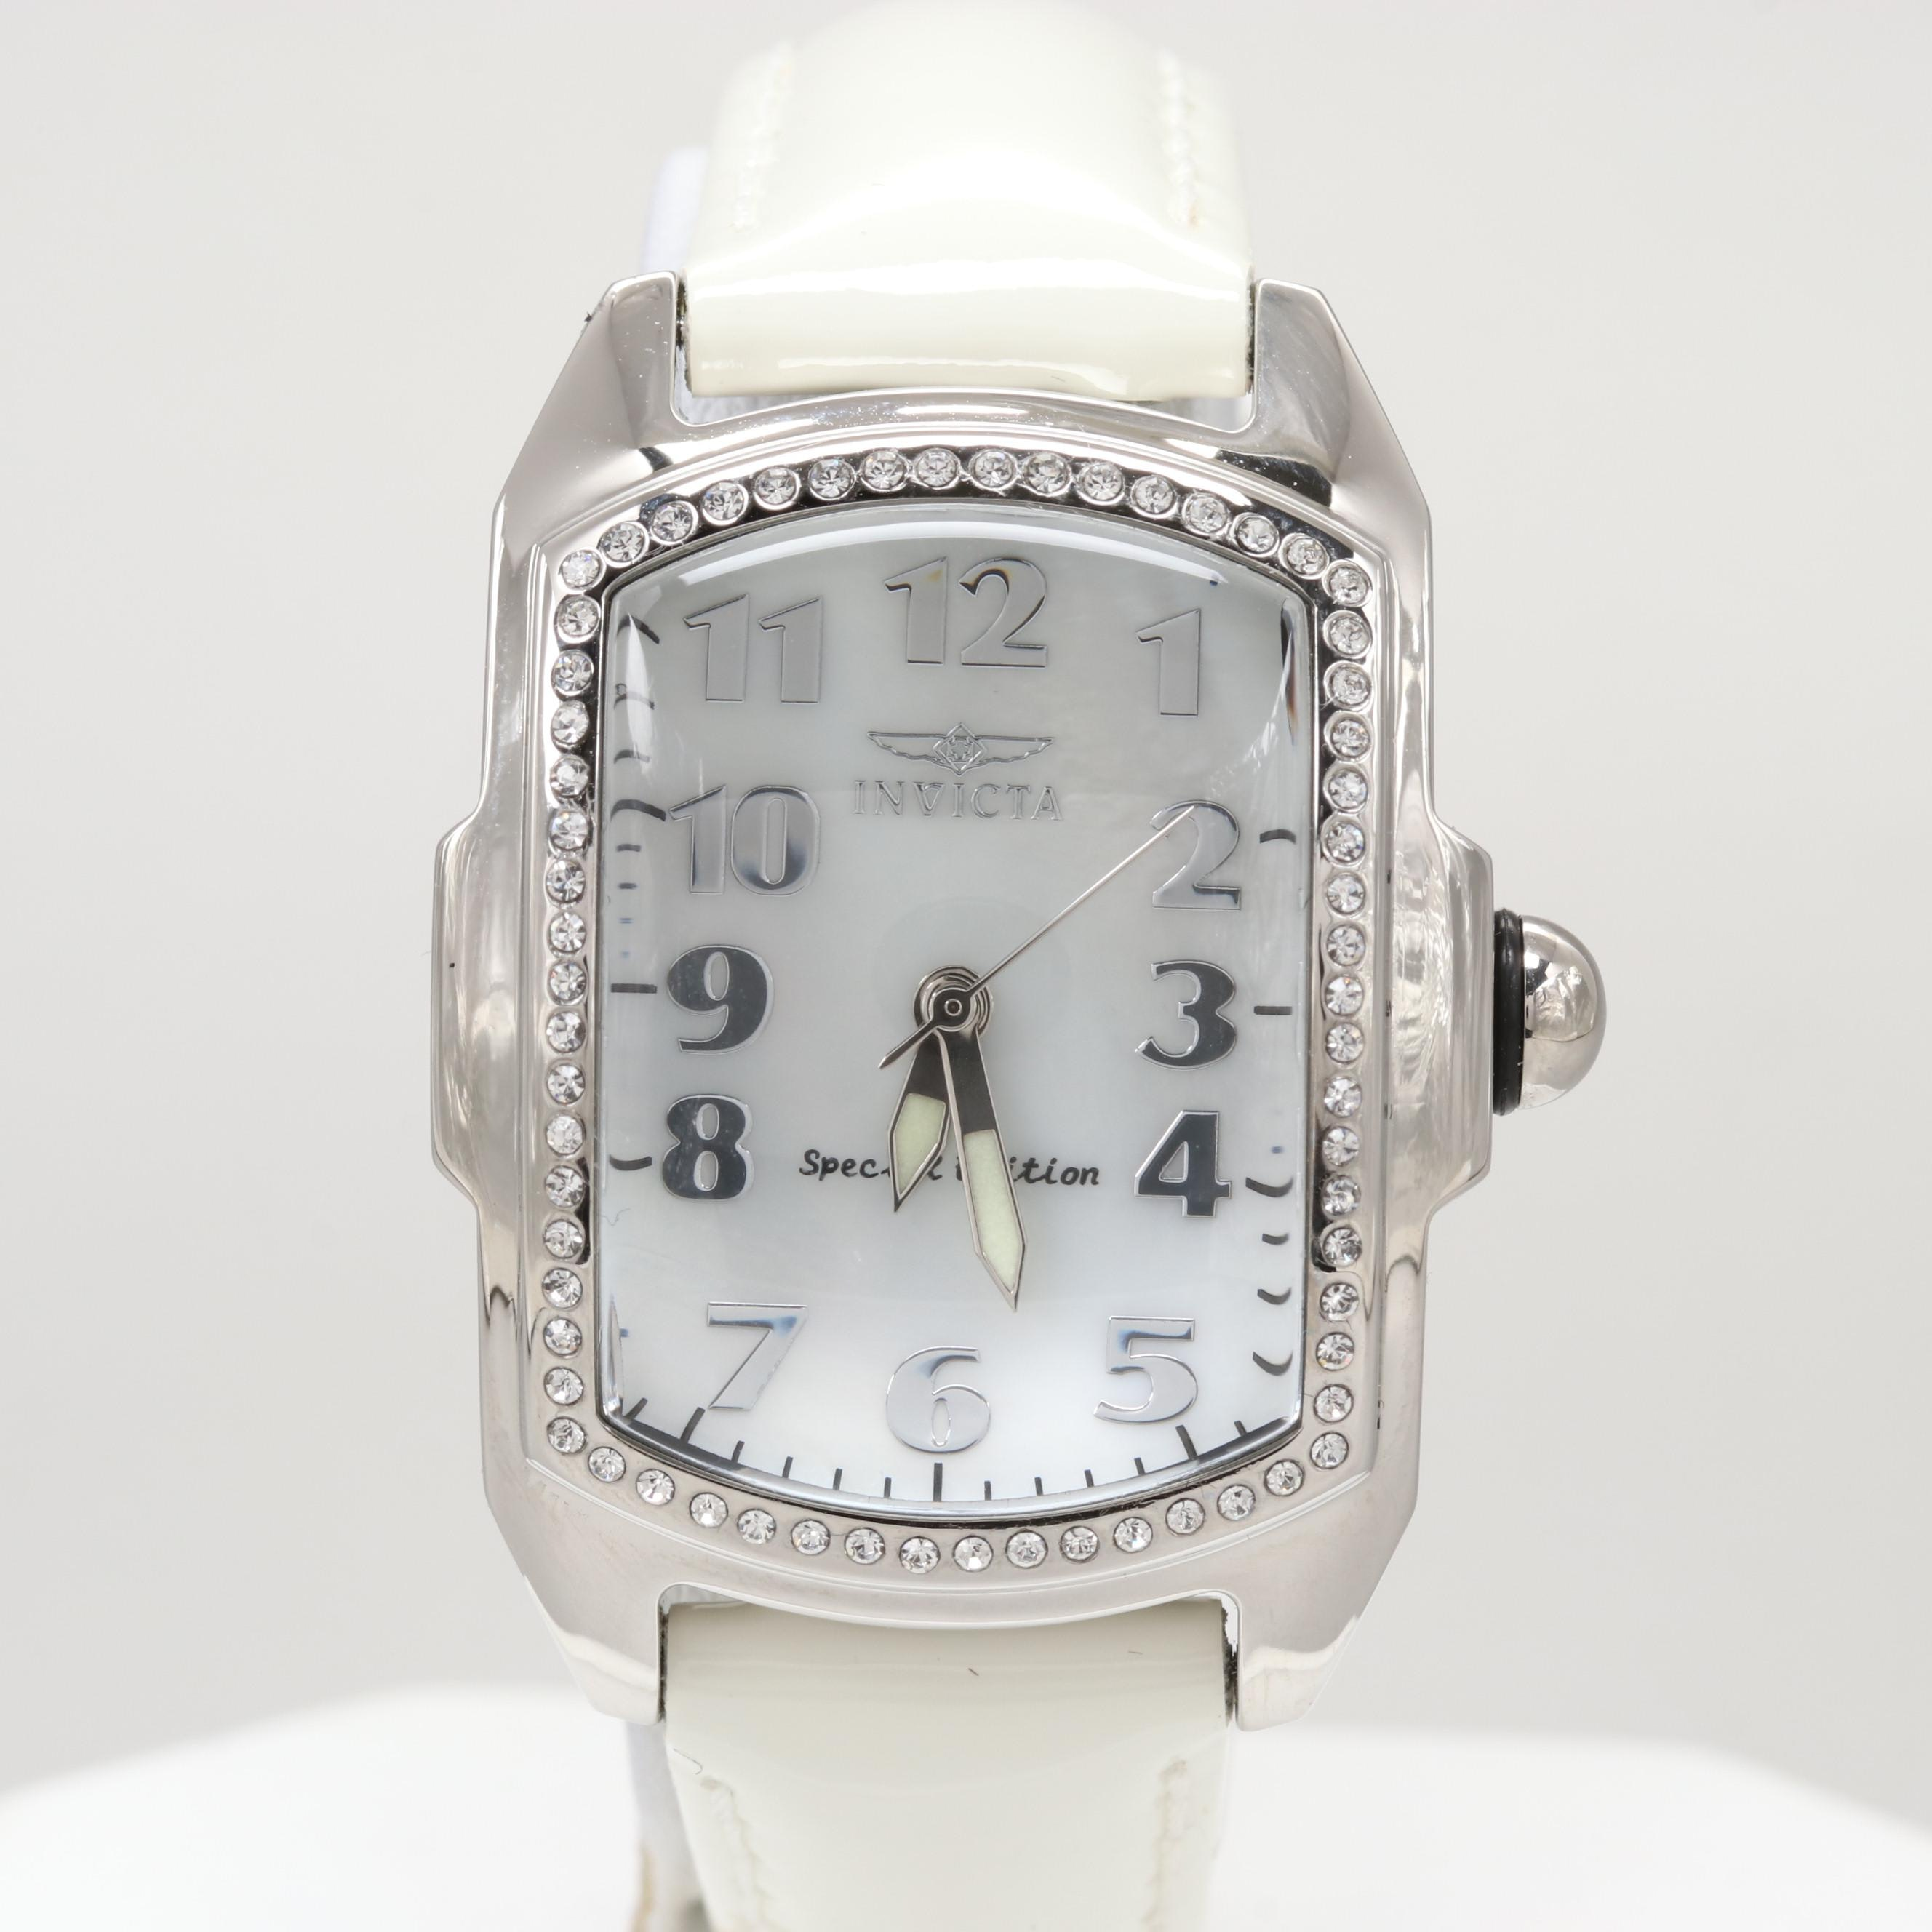 Invicta Lupah Quartz Wristwatch With Mother of Pearl Dial